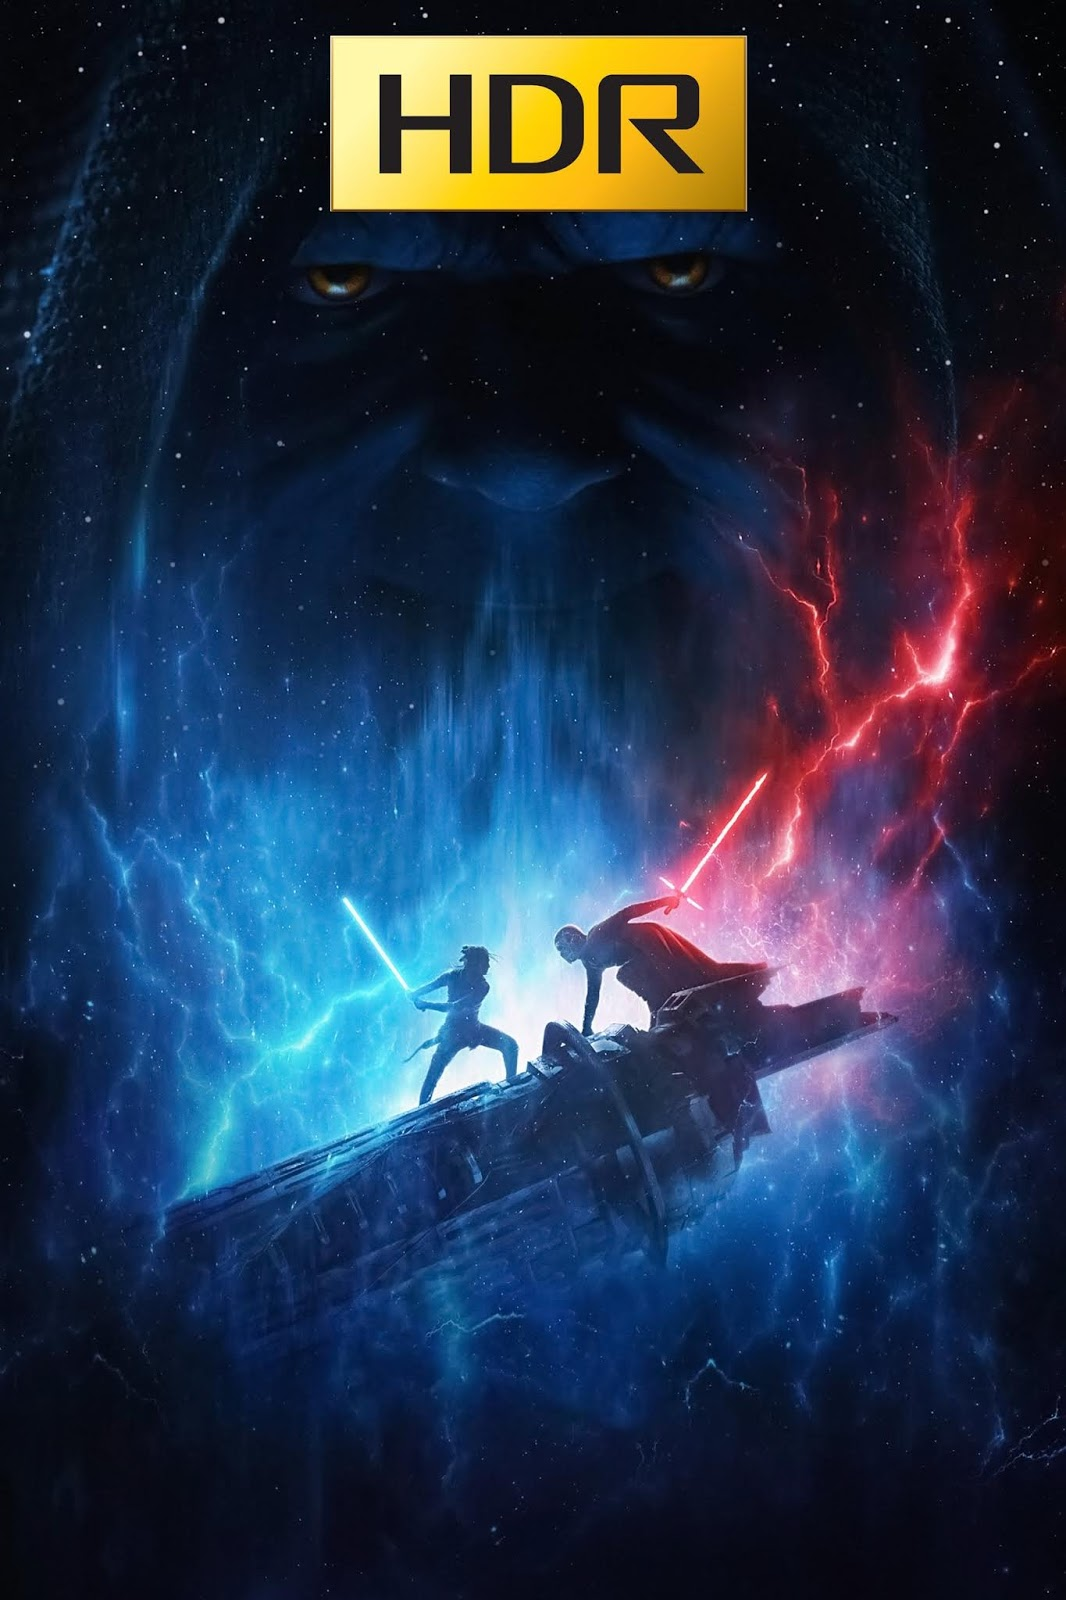 Star Wars Episodio IX: El ascenso de Skywalker (2019) 4K UHD HDR Web-DL Latino